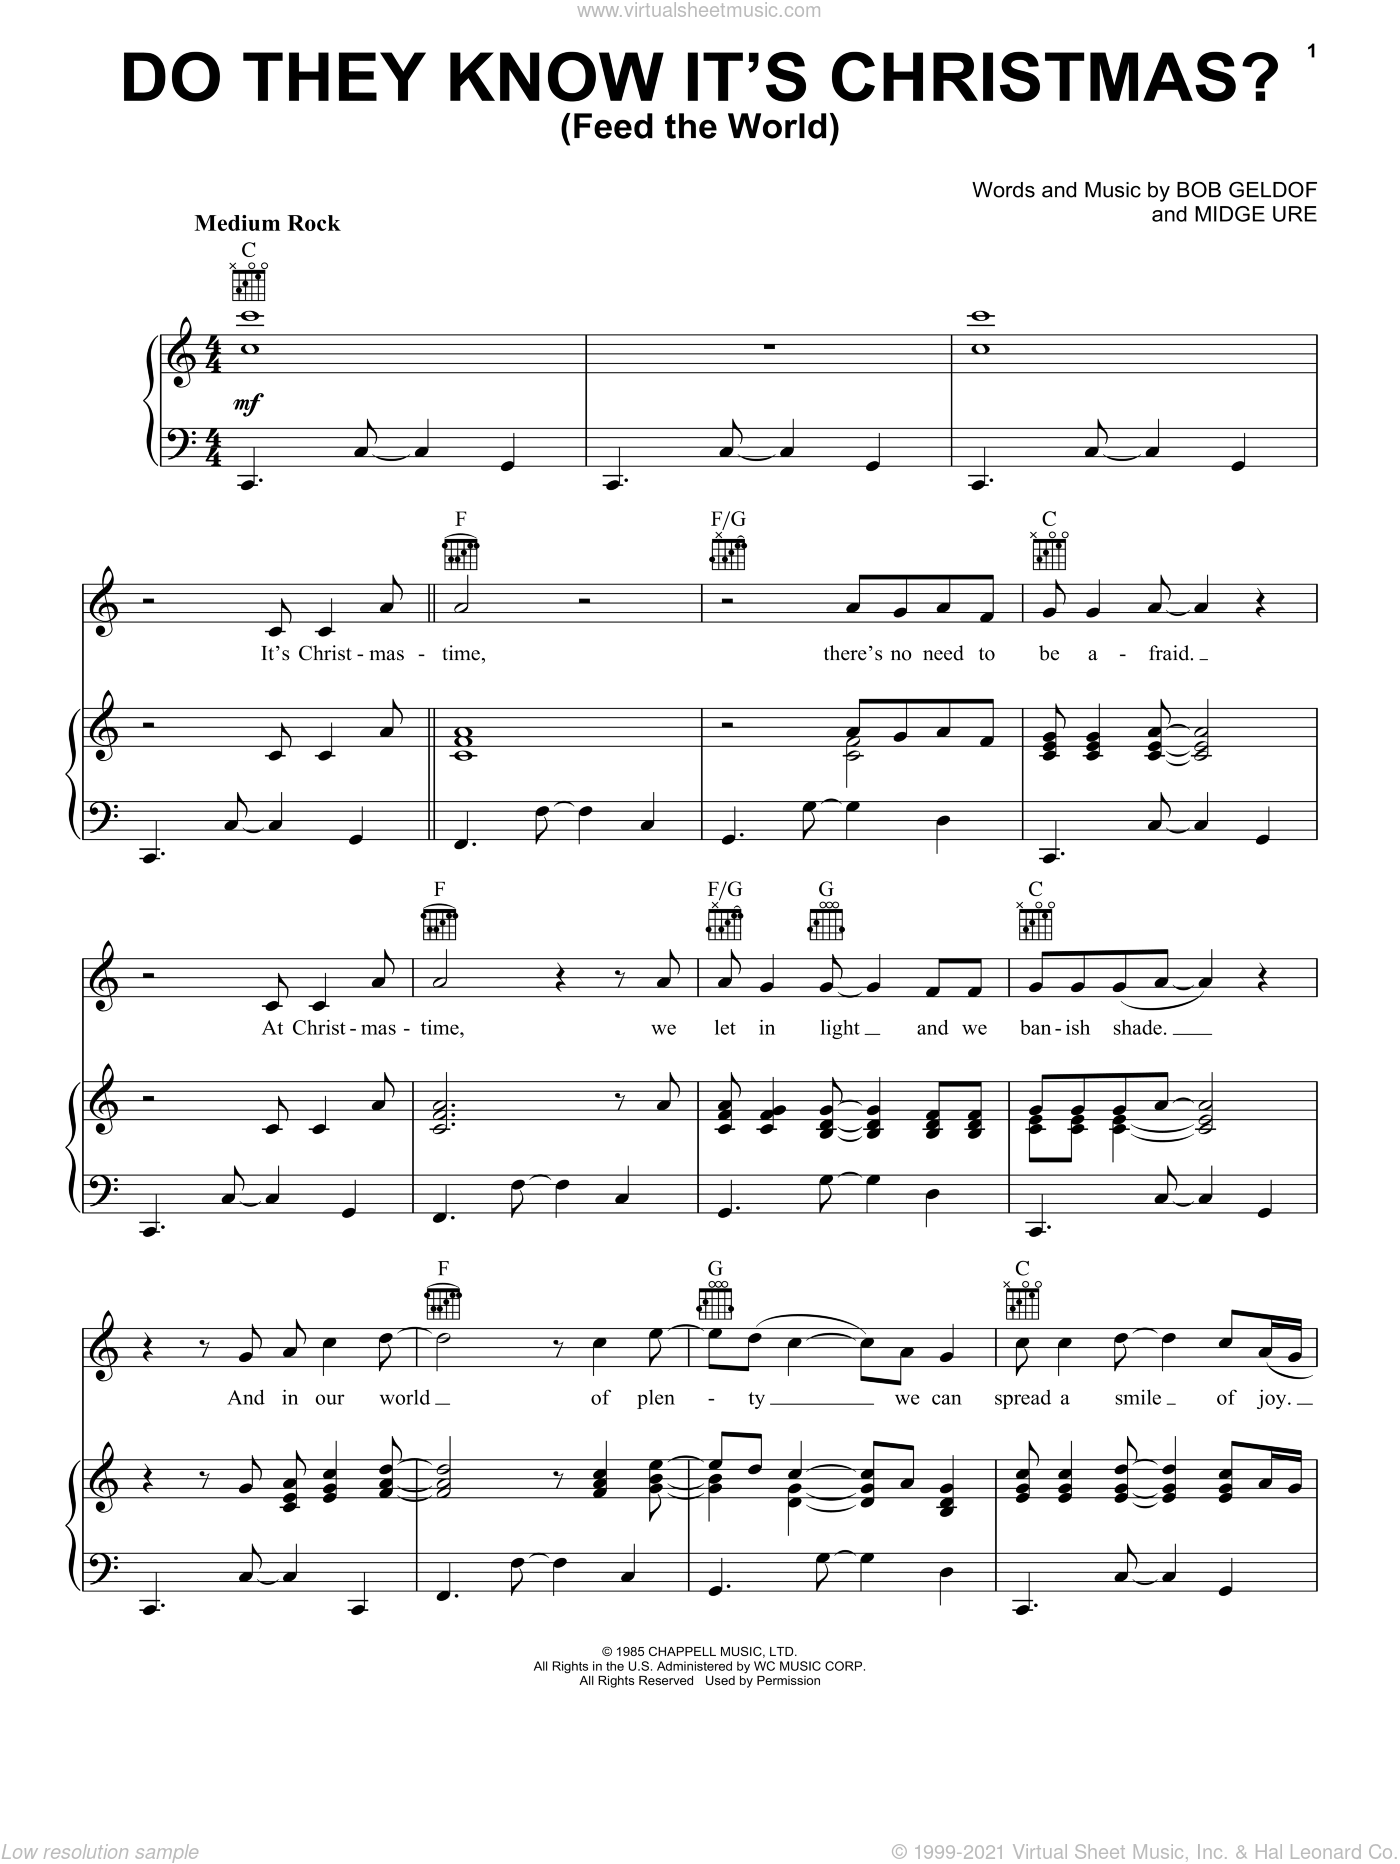 Do They Know It's Christmas? sheet music for voice, piano or guitar by Band Aid, Bob Geldof, B. Geldof and Midge Ure, intermediate skill level